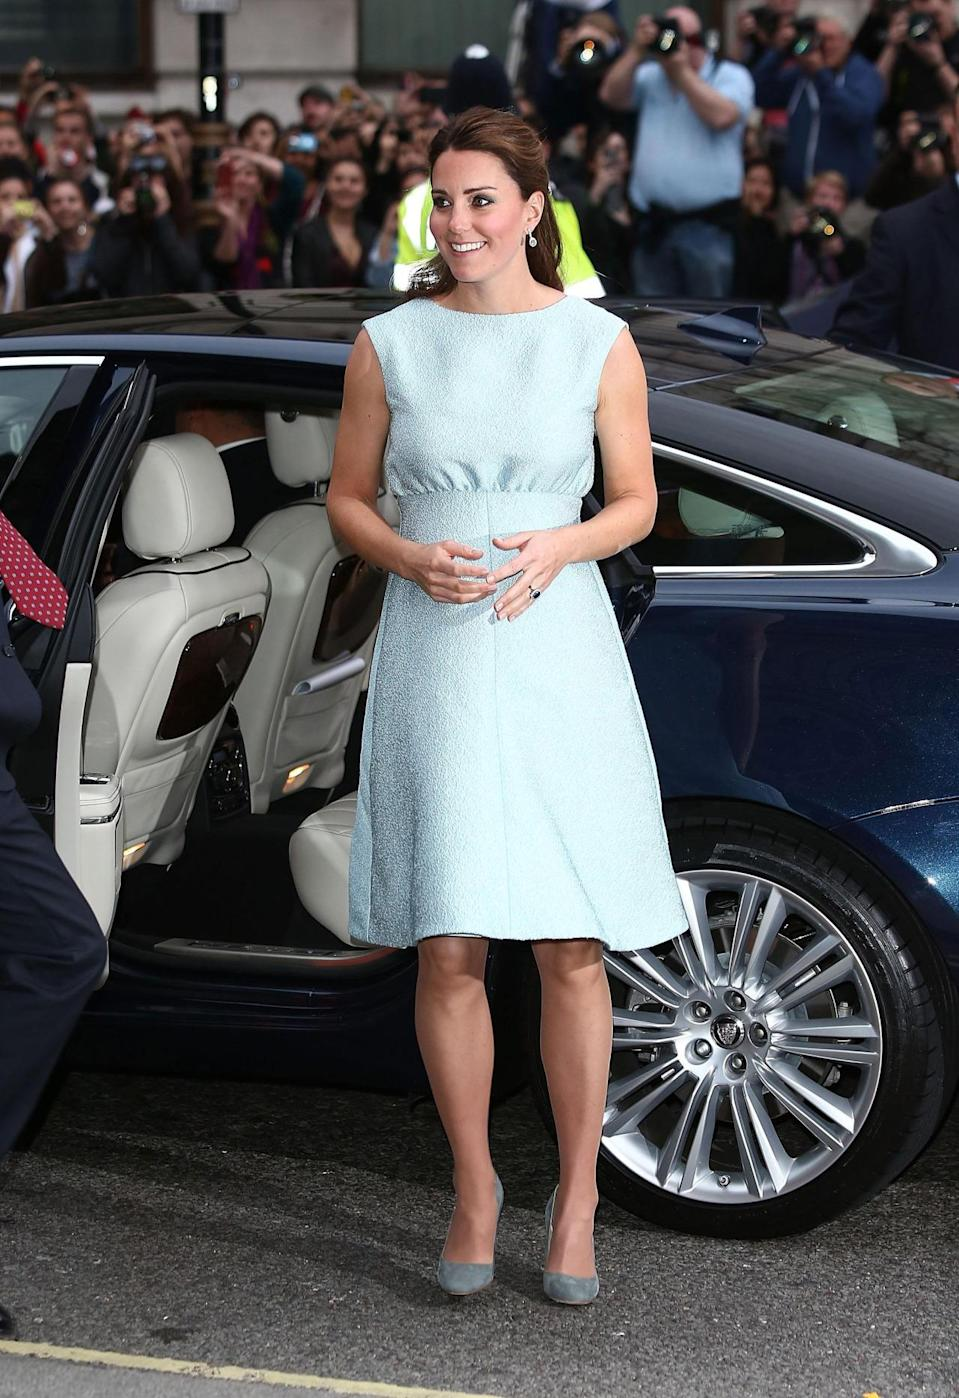 <p>Kate attended an art event dressed in a gorgeous custom blue dress by Emilia Wickstead. Accessories included grey Rupert Sanderson pumps. </p><p><i>[Photo: PA]</i></p>